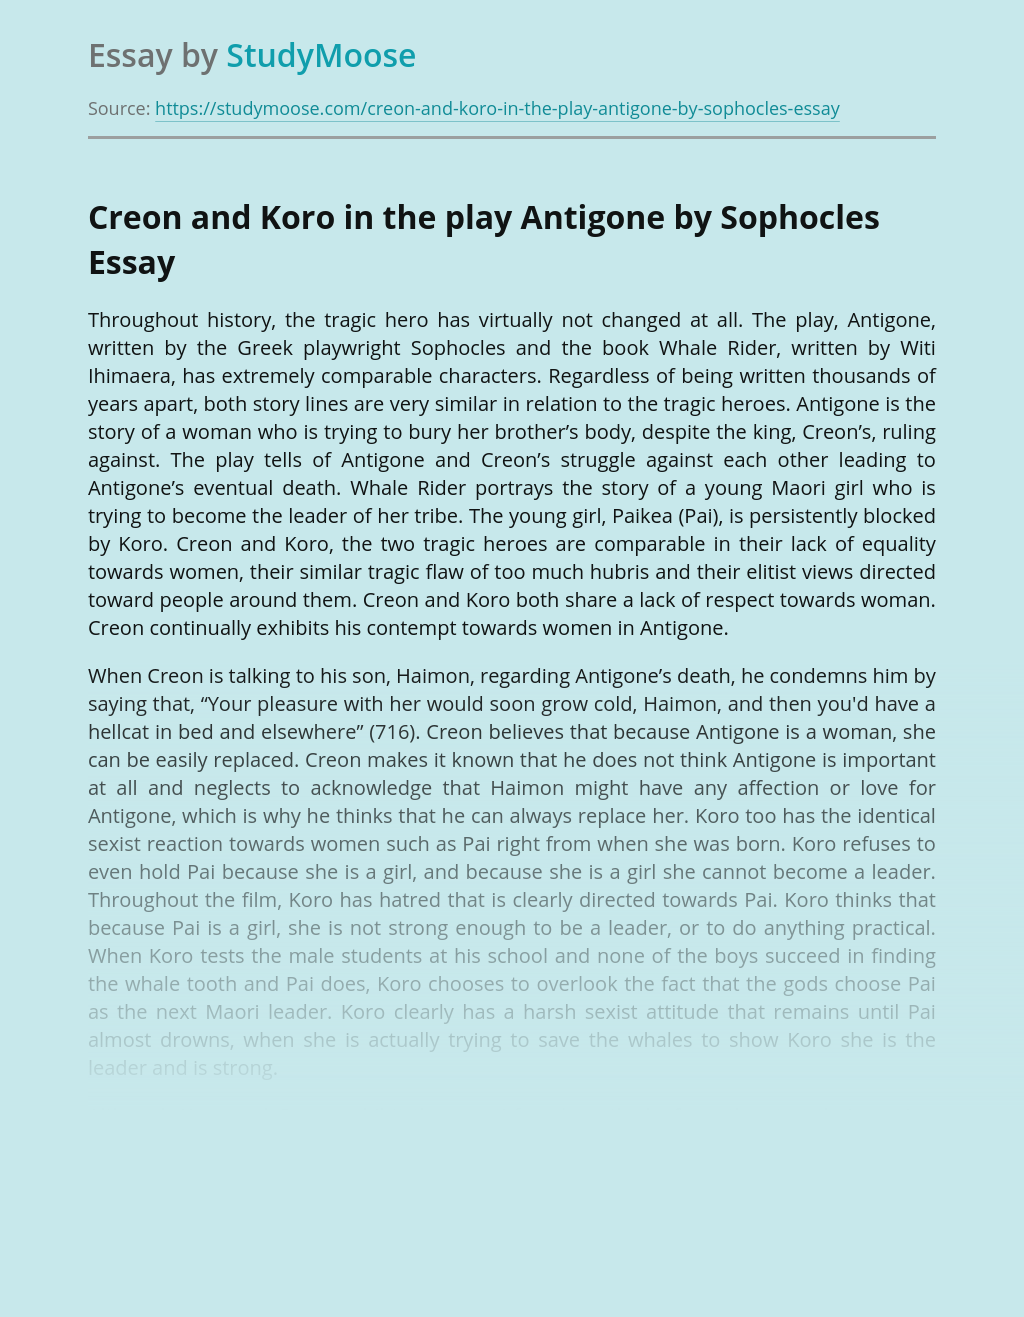 Creon and Koro in the play Antigone by Sophocles